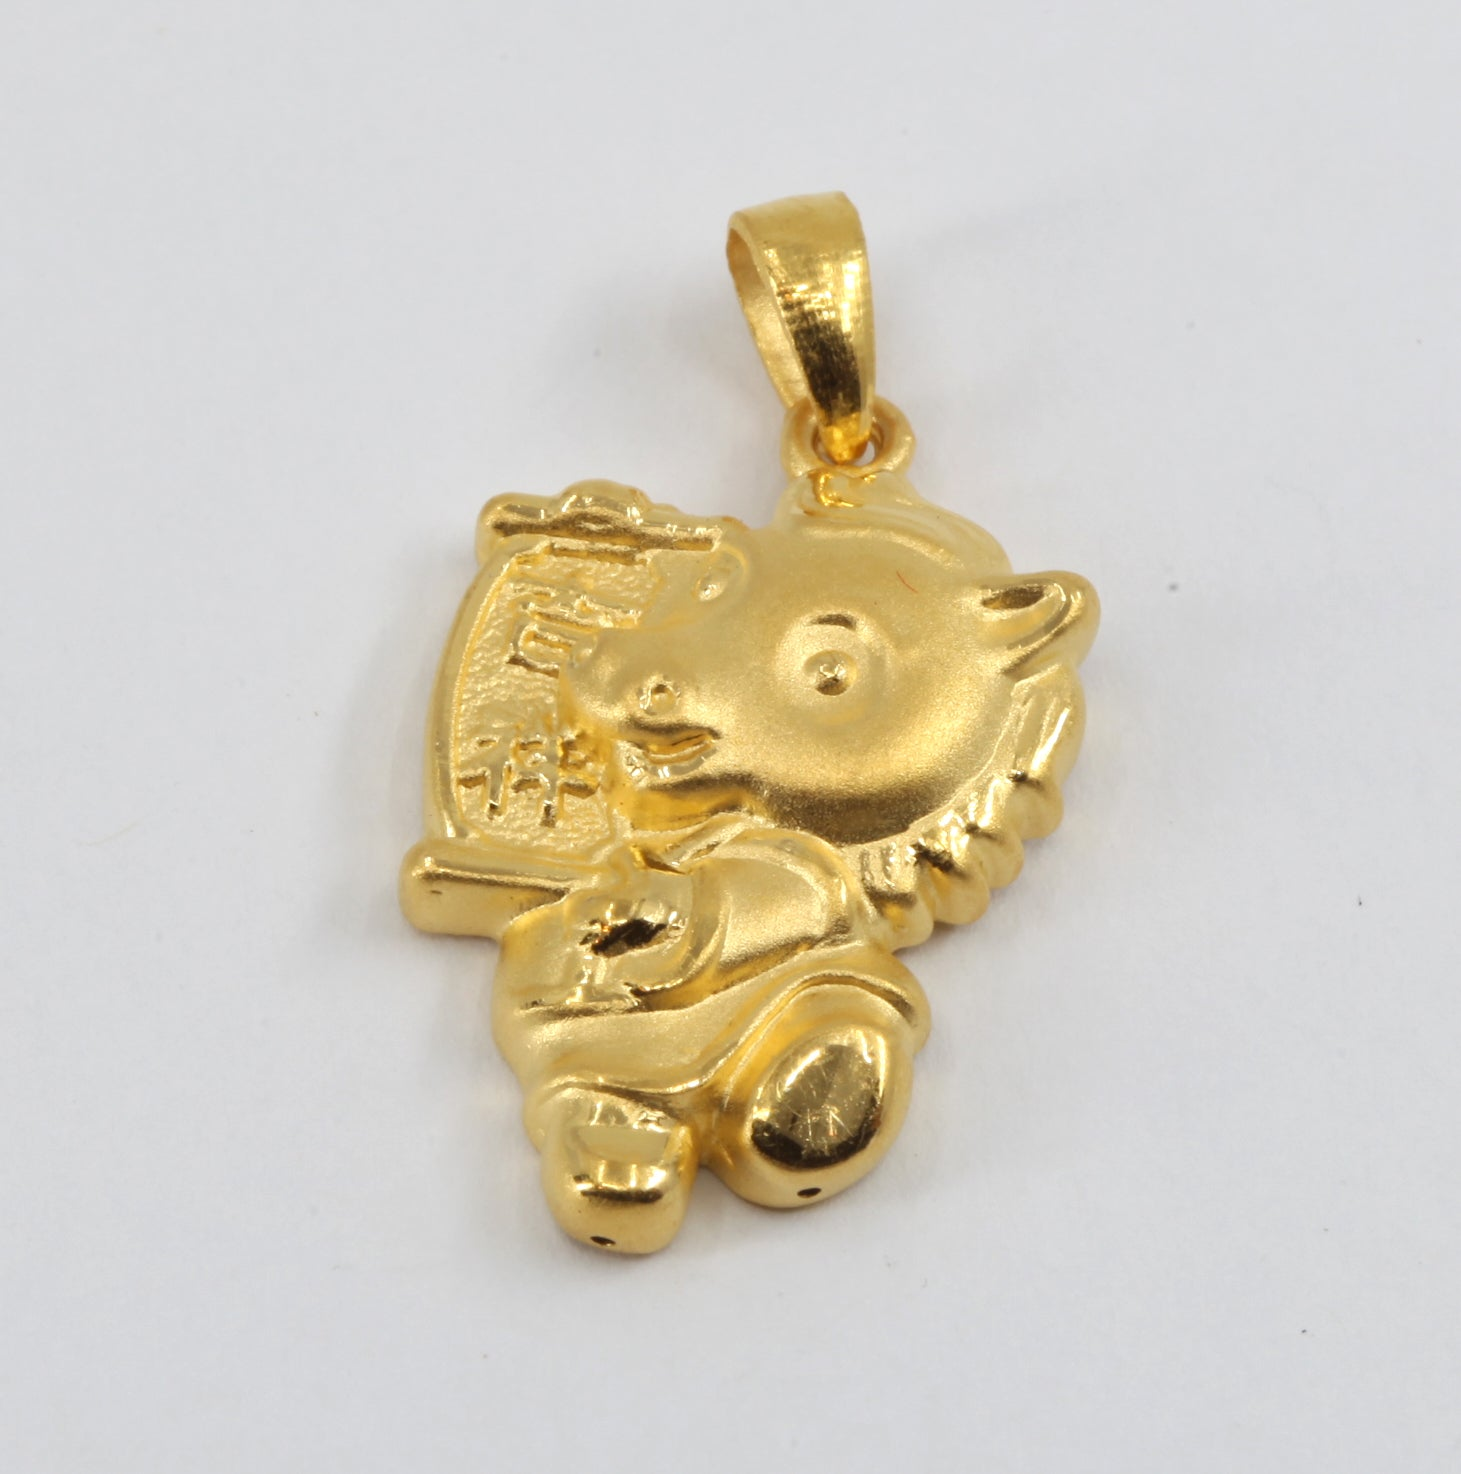 24K Solid Yellow Gold Puffy Zodiac Horse Hollow Pendant 1.8 Grams